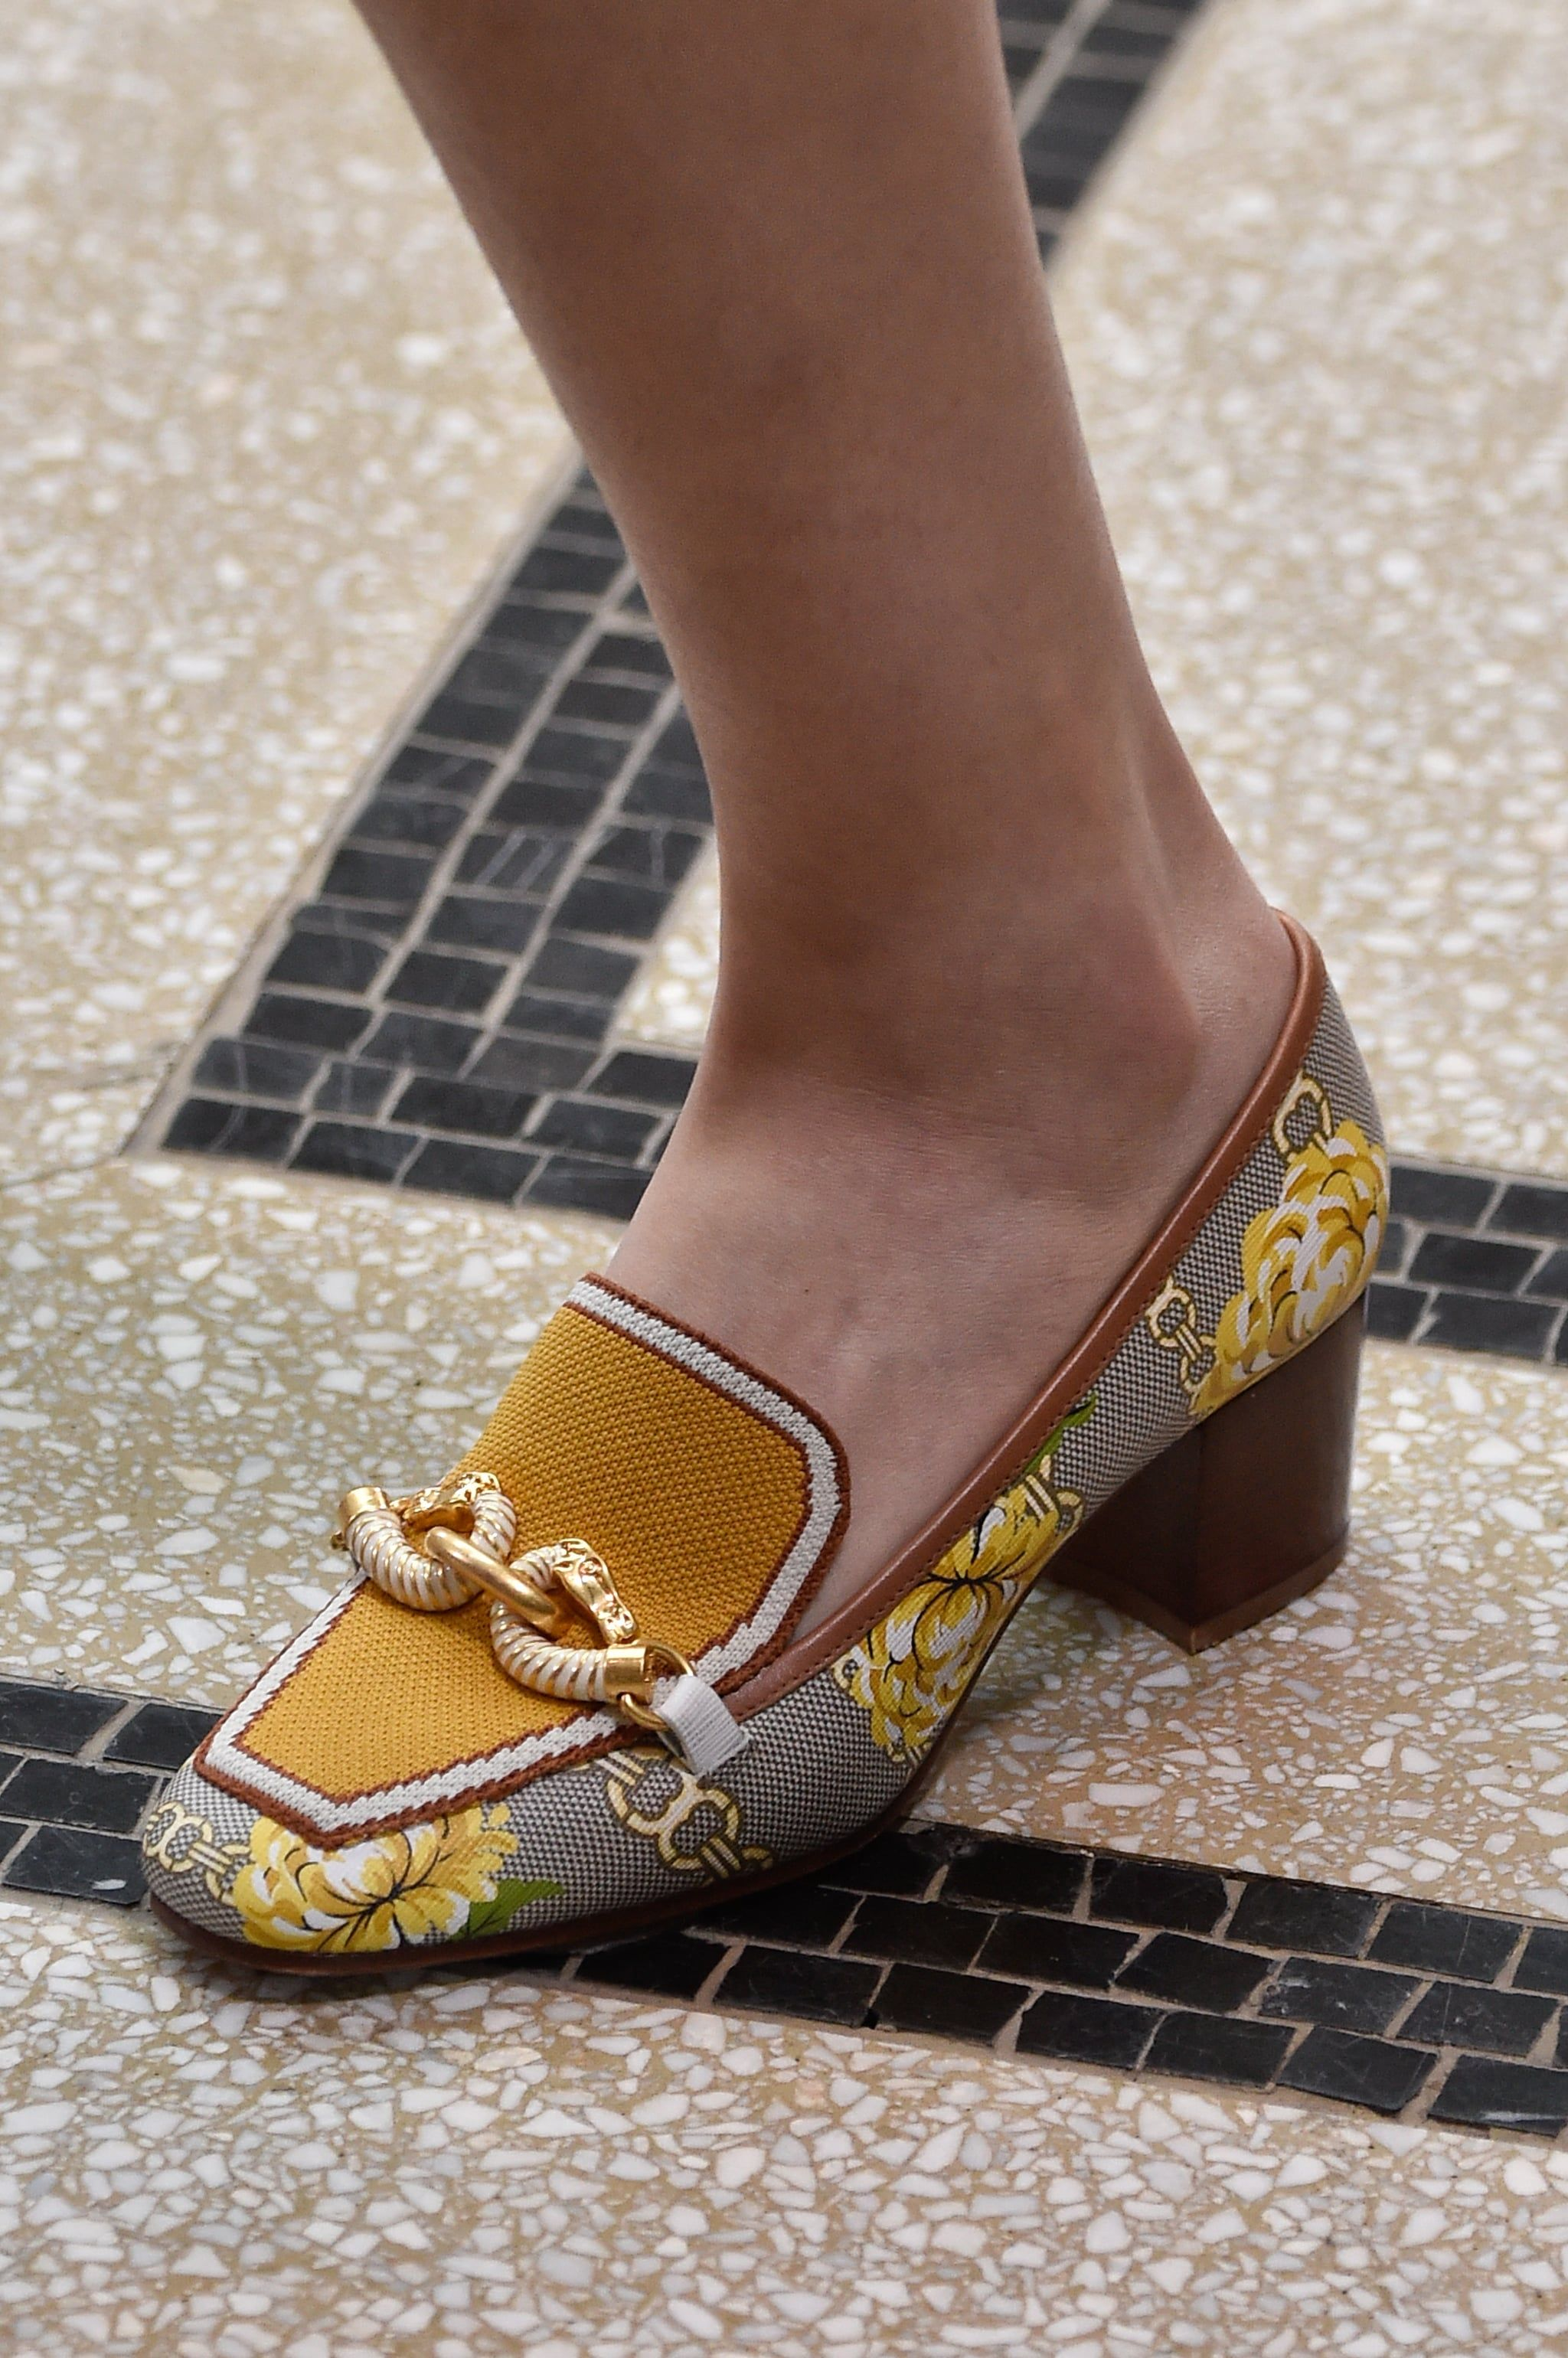 Spring Shoe Trends 2020 Luxe Loafers is part of Trending shoes, Loafers for women, Spring shoe trend, Spring shoes, Trending womens shoes, Fashion shoes - From sandals to heels and sneakers, feast your eyes on the most eyecatching shoes from the Spring 2020 runways